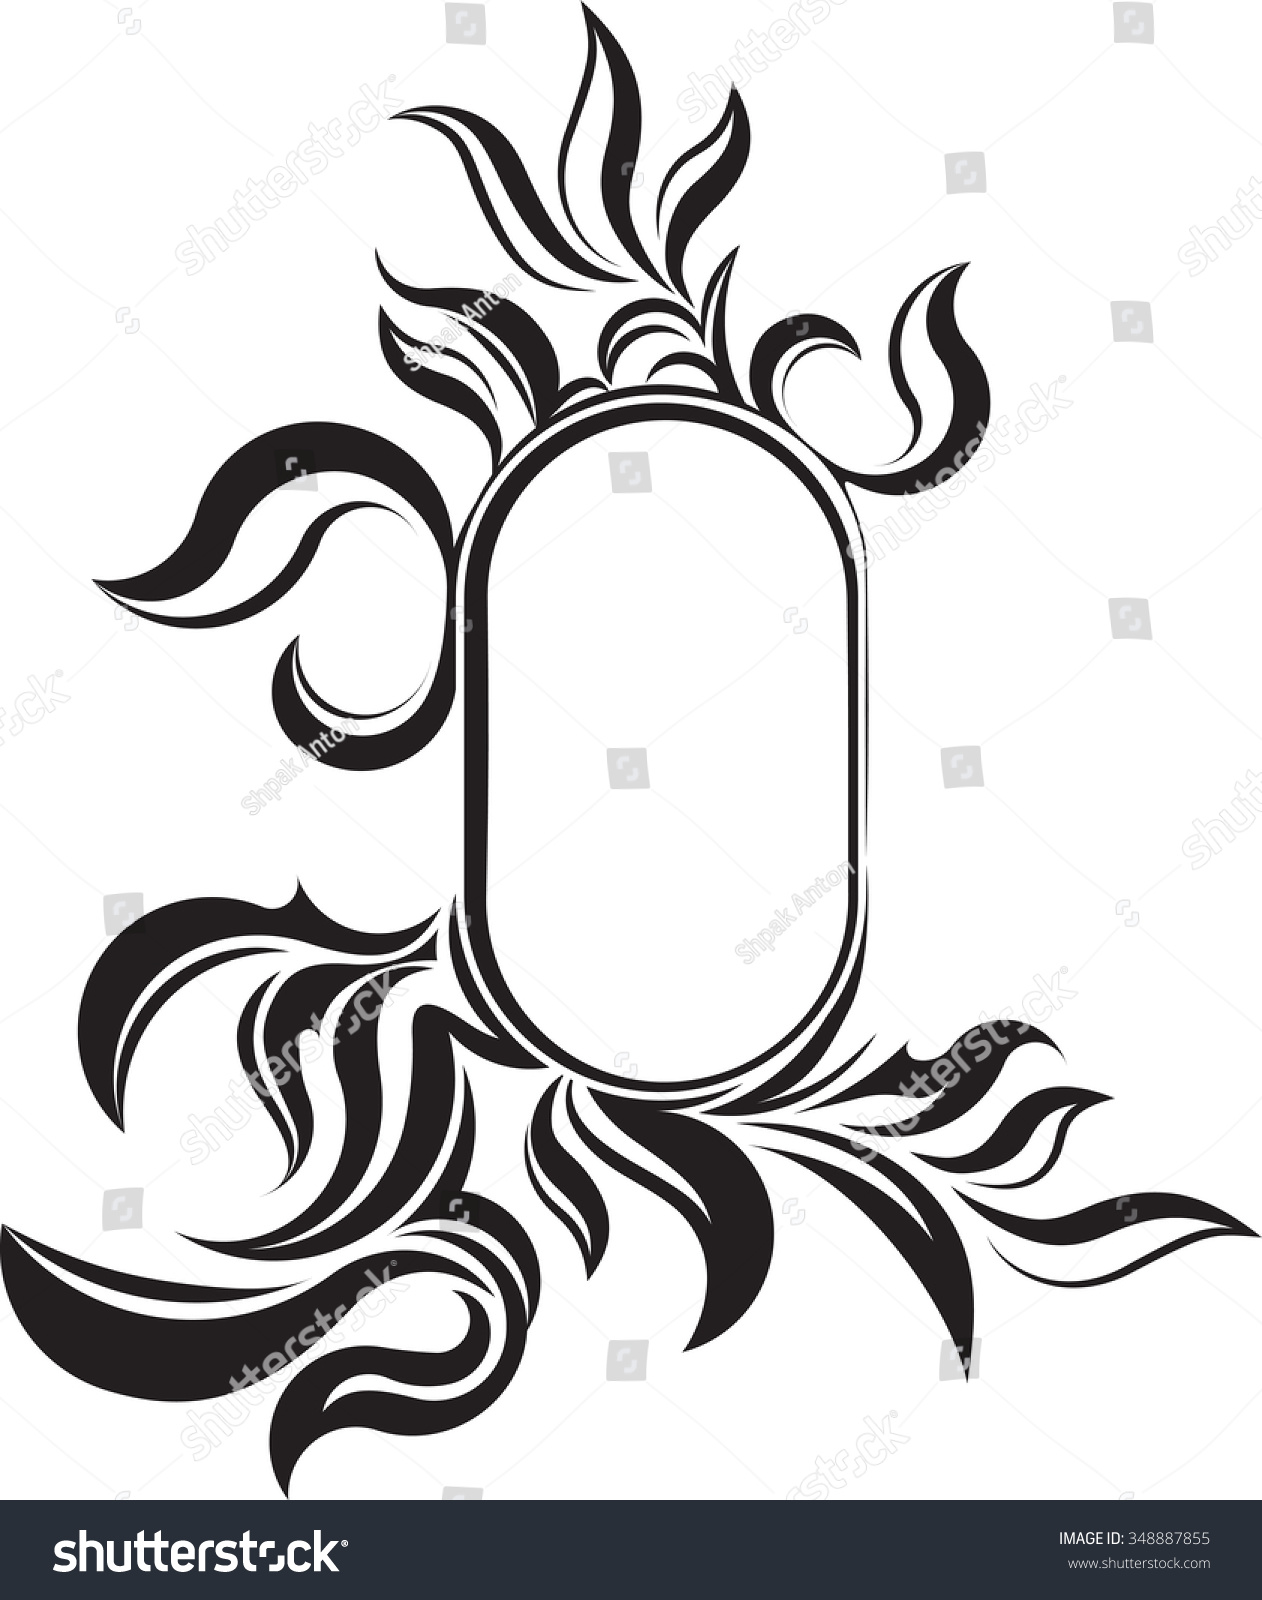 oval frame tattoo design. Unusual Oval Vintage Frame For Your Design Or Tattoo. Vector Illustration. Tattoo